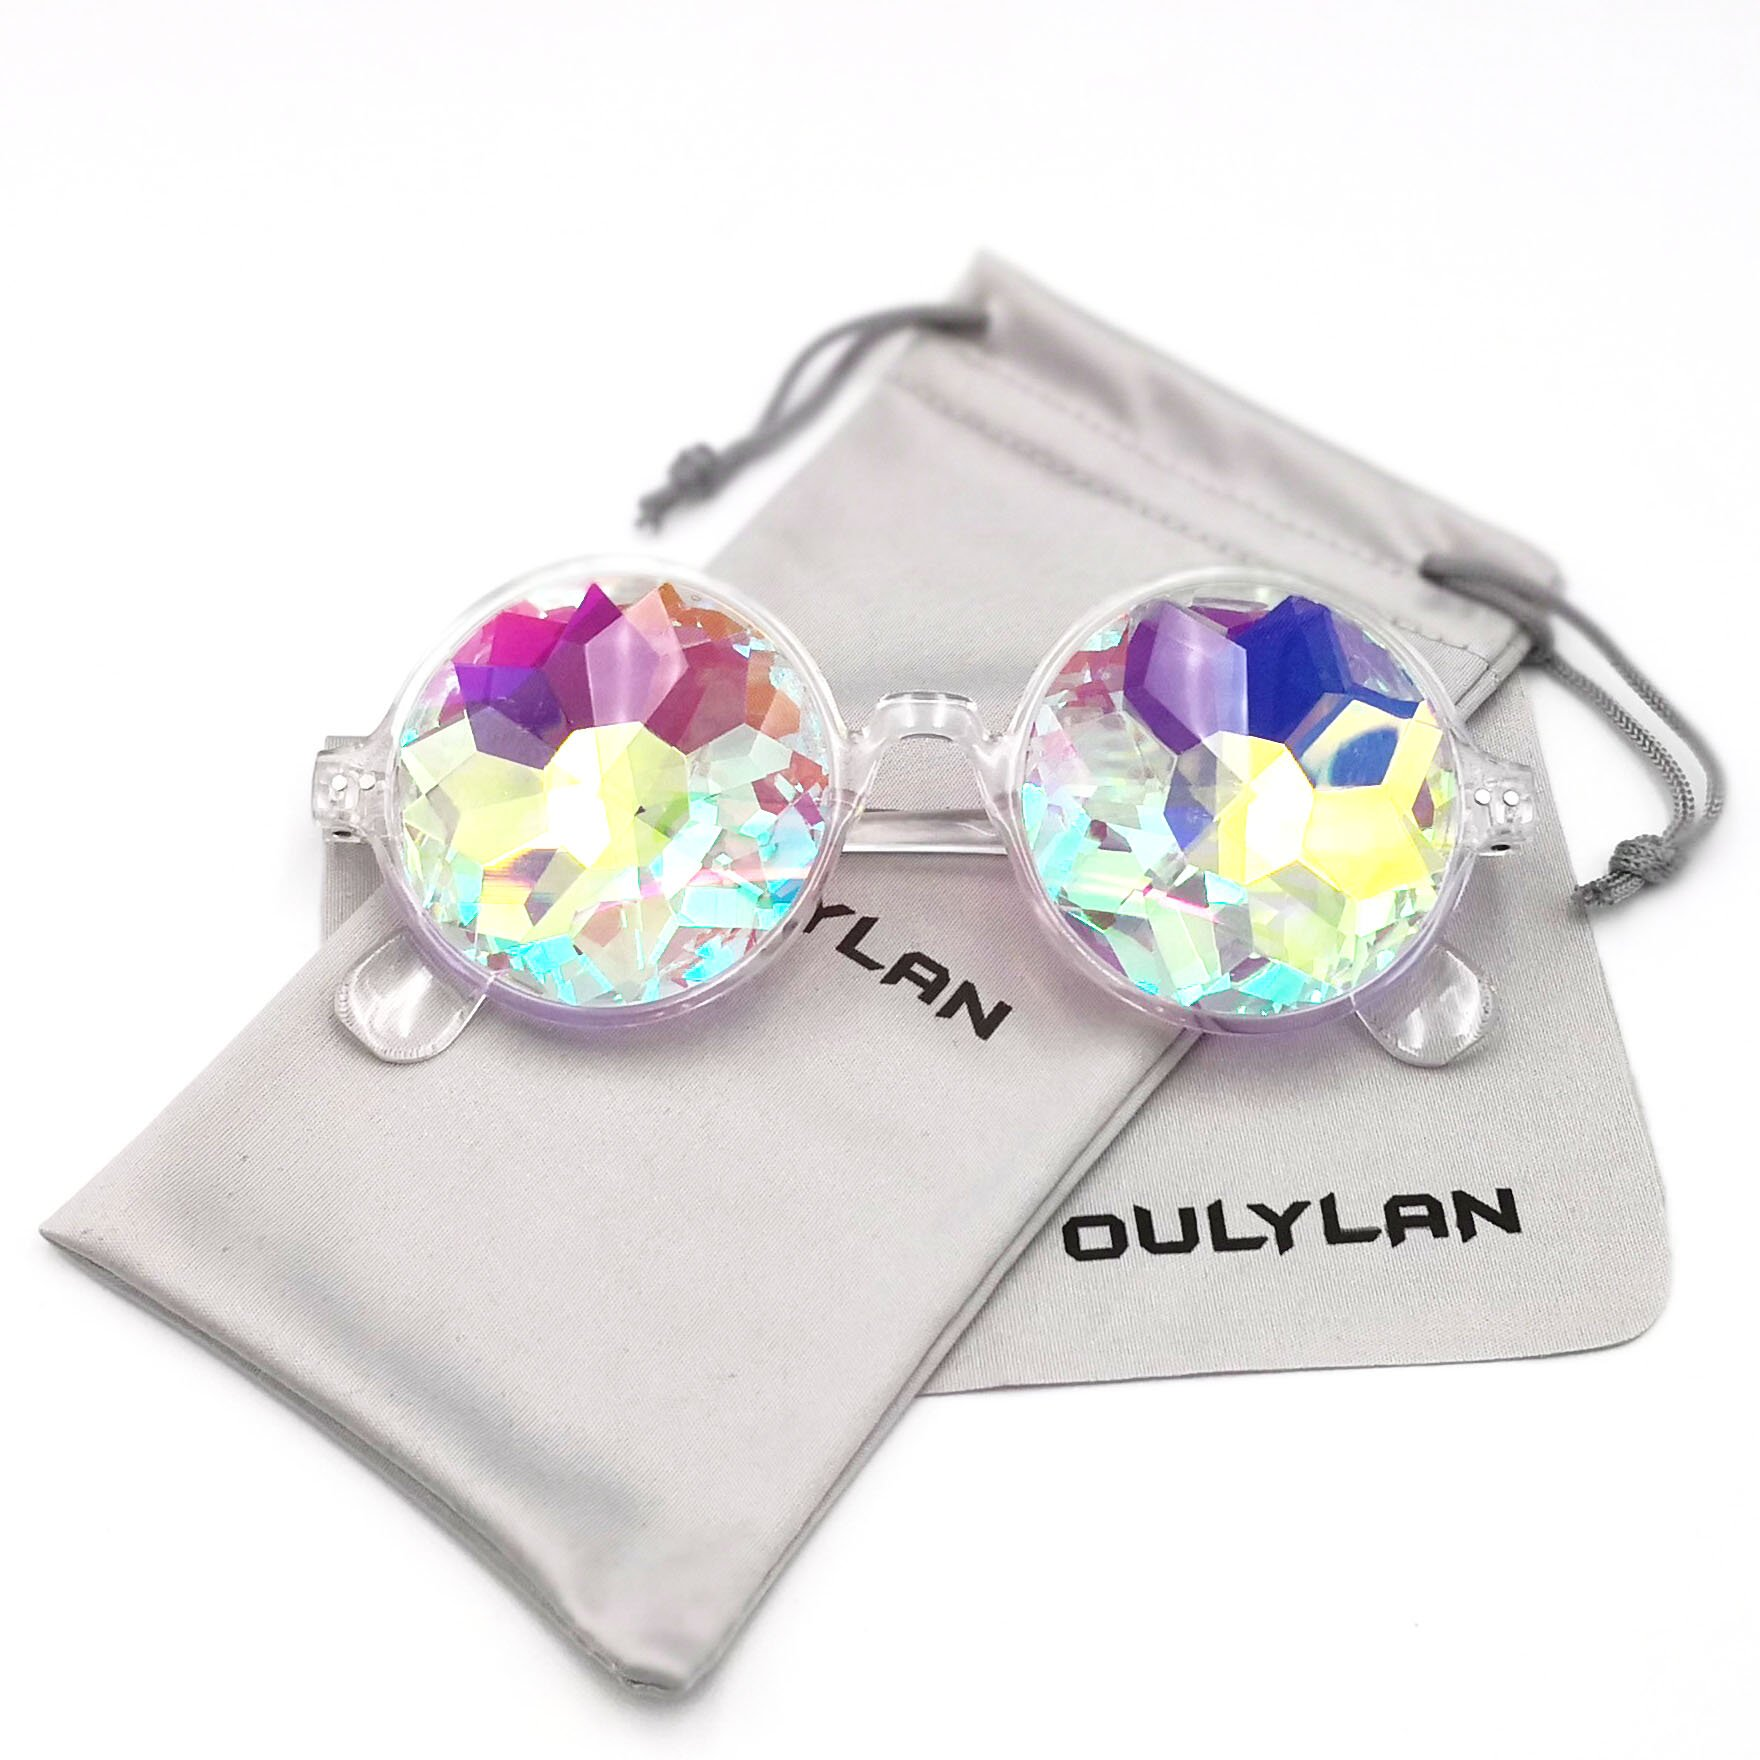 Round Kaleidoscope Glasses Rainbow Prism Sunglasses for Women Men OULYLAN Party Rave Festival Glasses with Grey Sun Glasses Cloth Bag (Clear) by OULYLAN